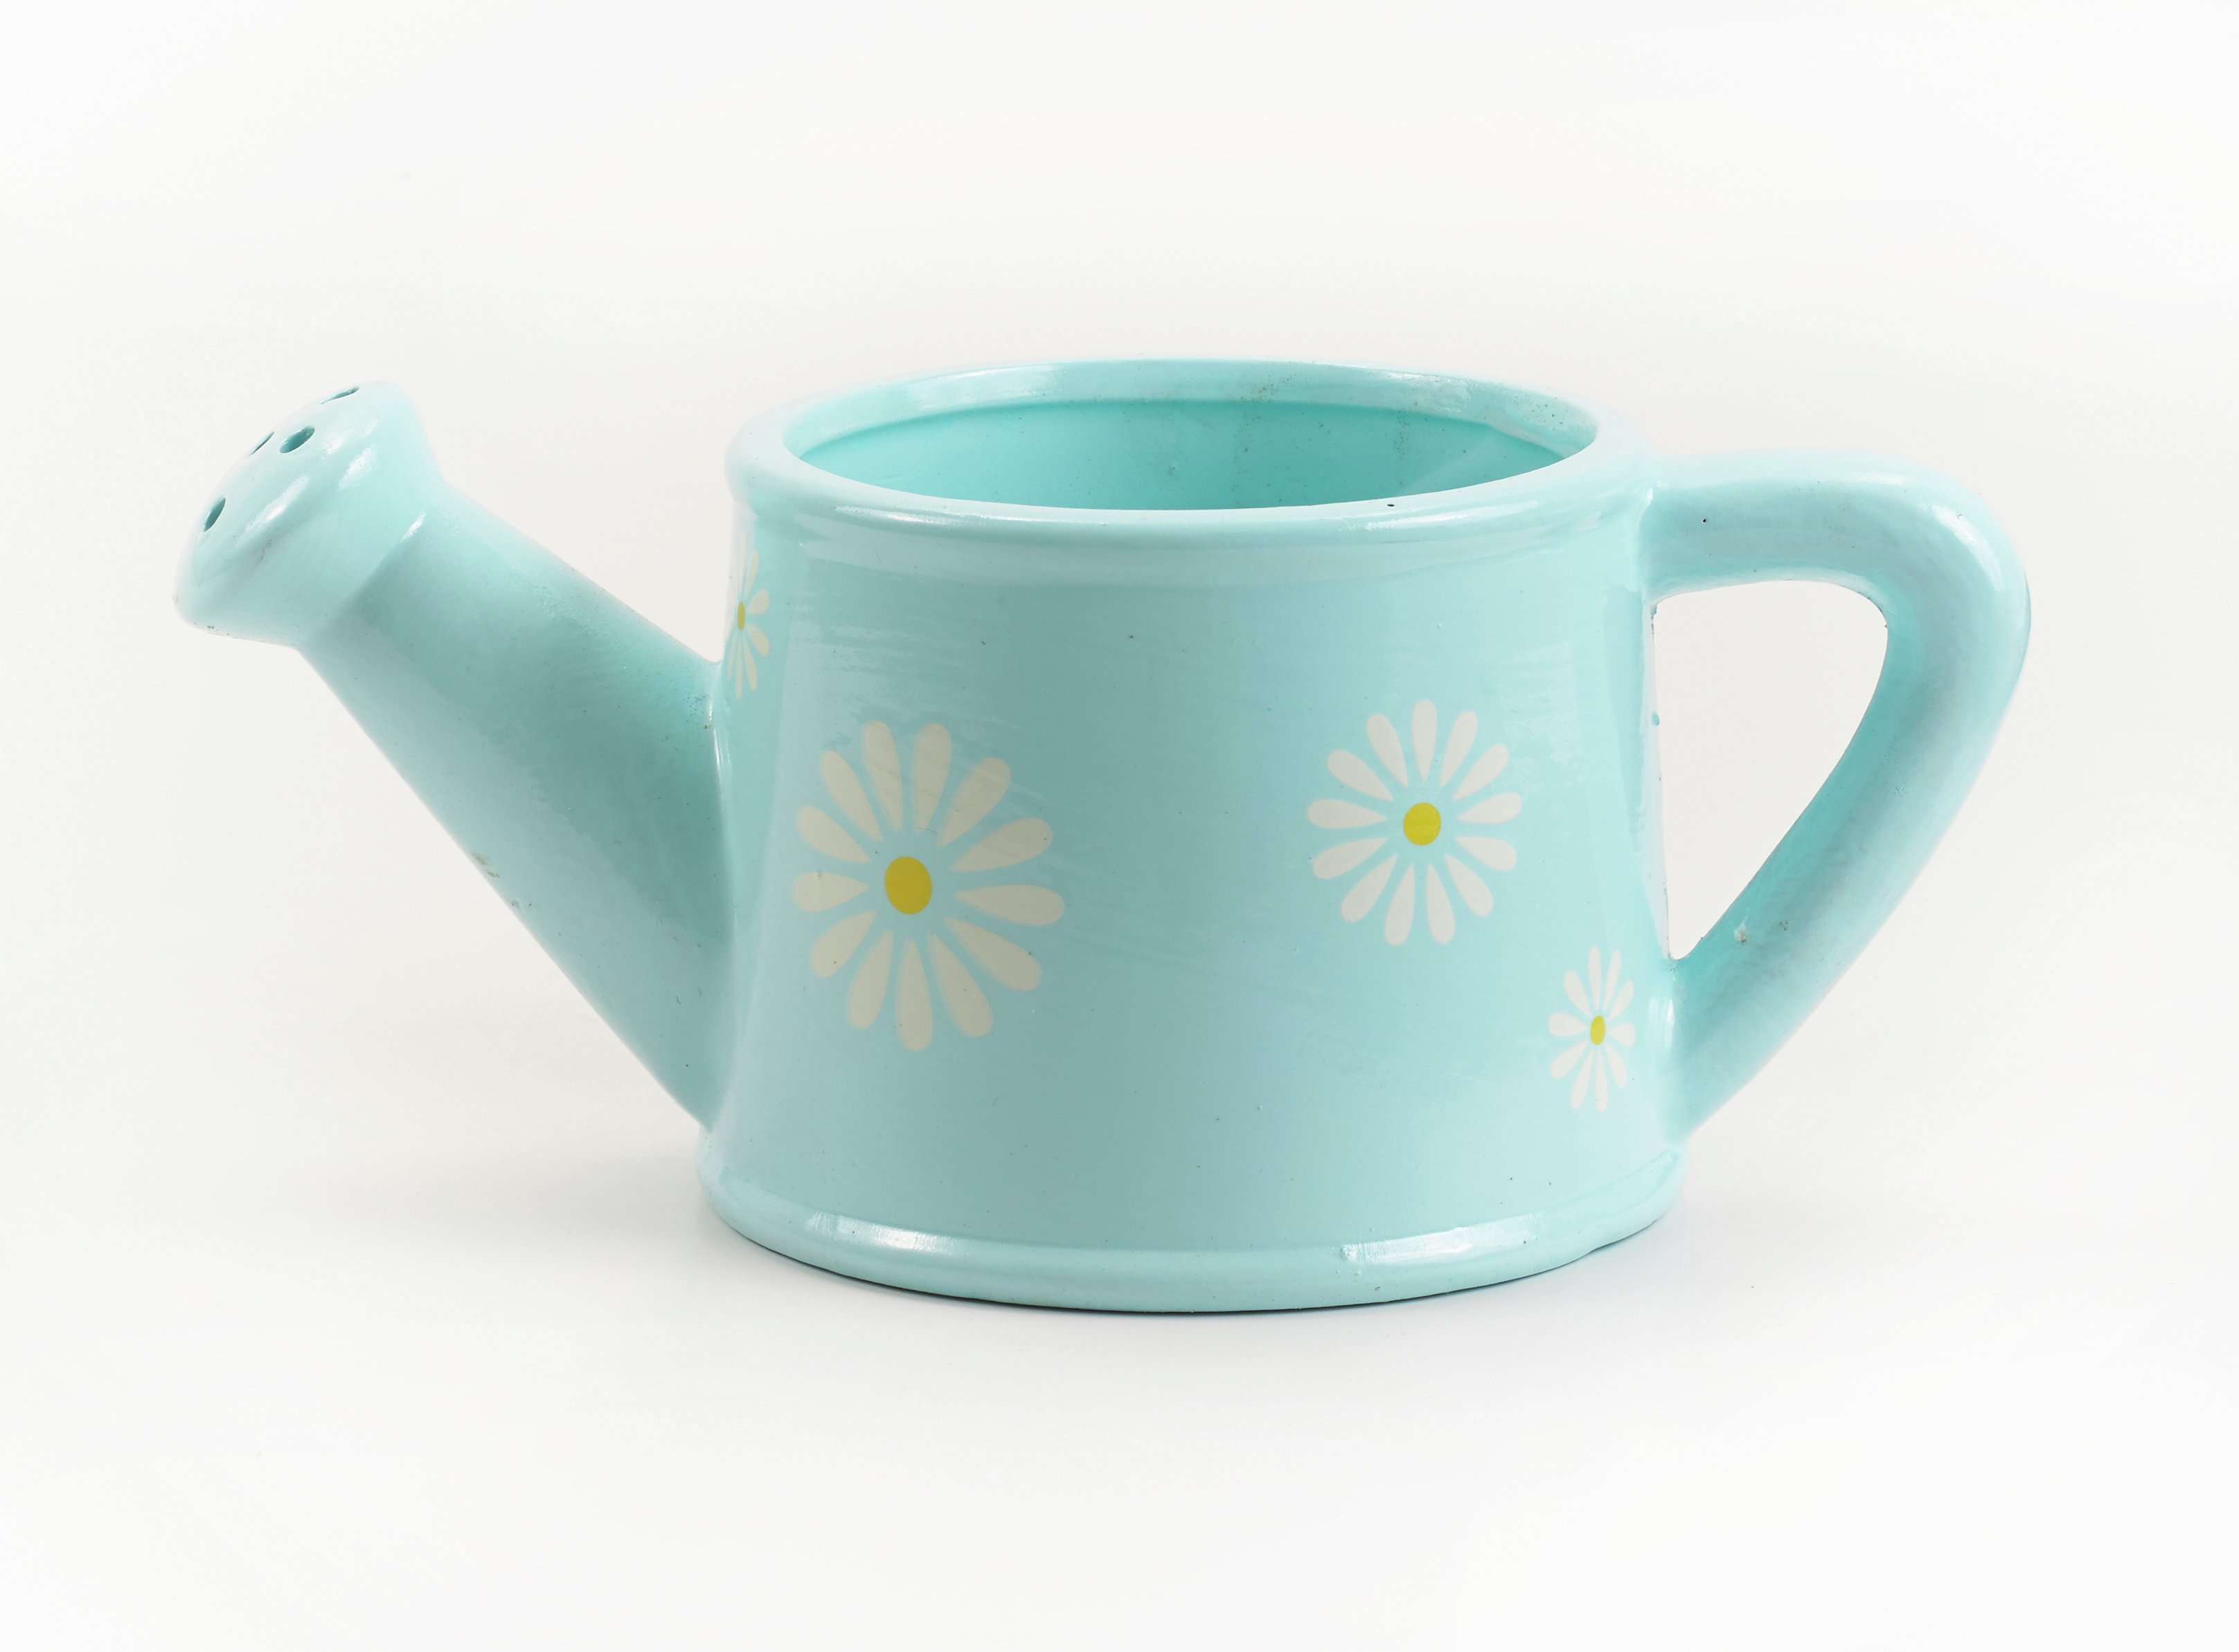 sale on ceramic daisy watering can garden planter. Black Bedroom Furniture Sets. Home Design Ideas